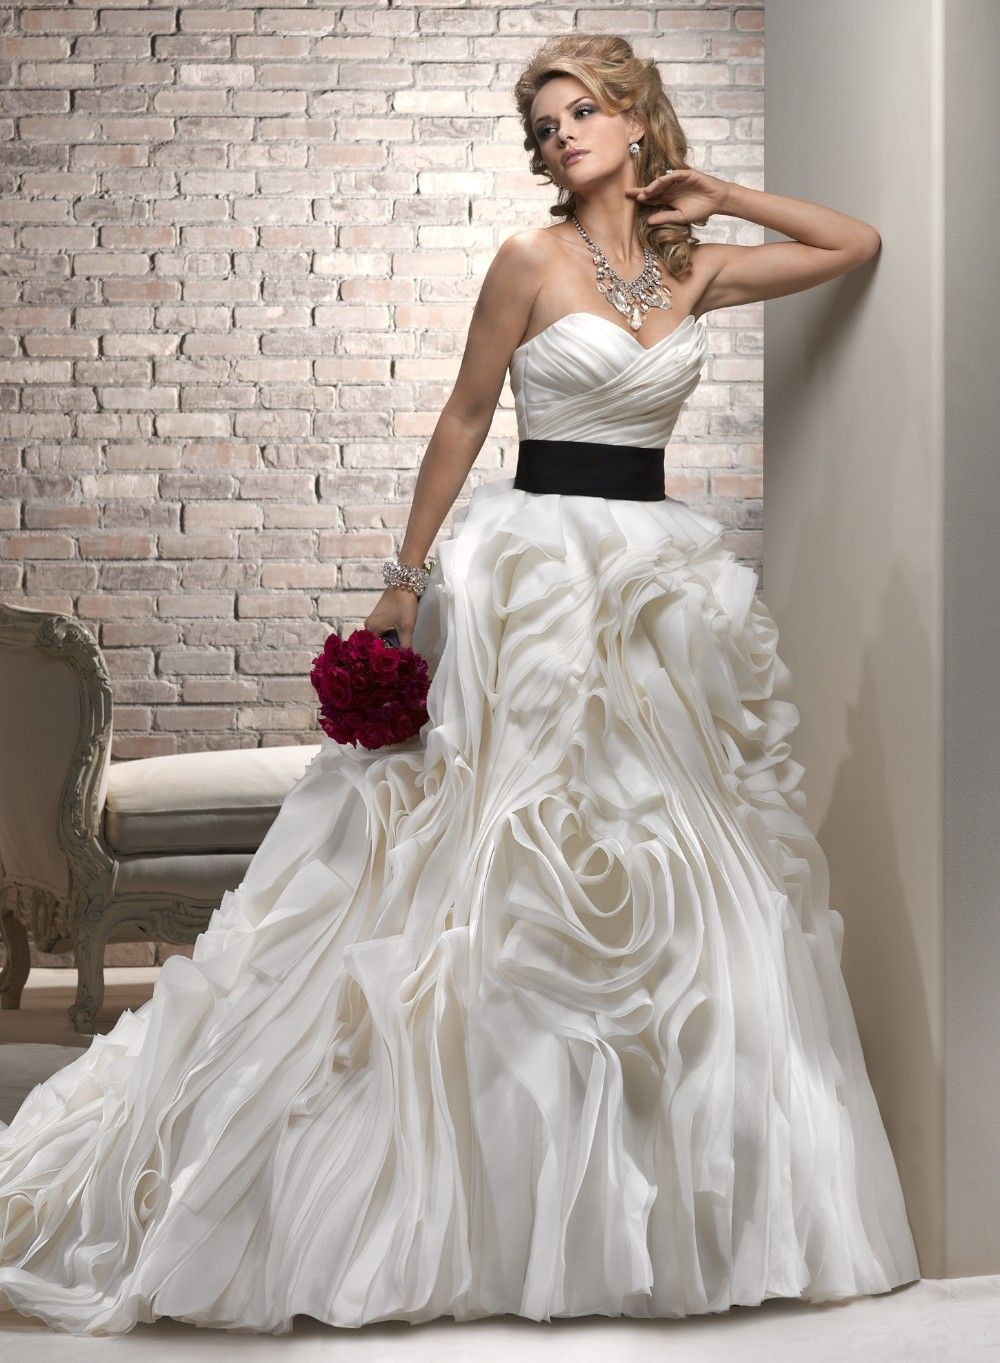 aeProduct.getSubject()http://www.aliexpress.com/store/product/TWD667-off-shoulder-actual-luxury-corset-top-ball-gown-wedding-dress/435161_1602010727.html